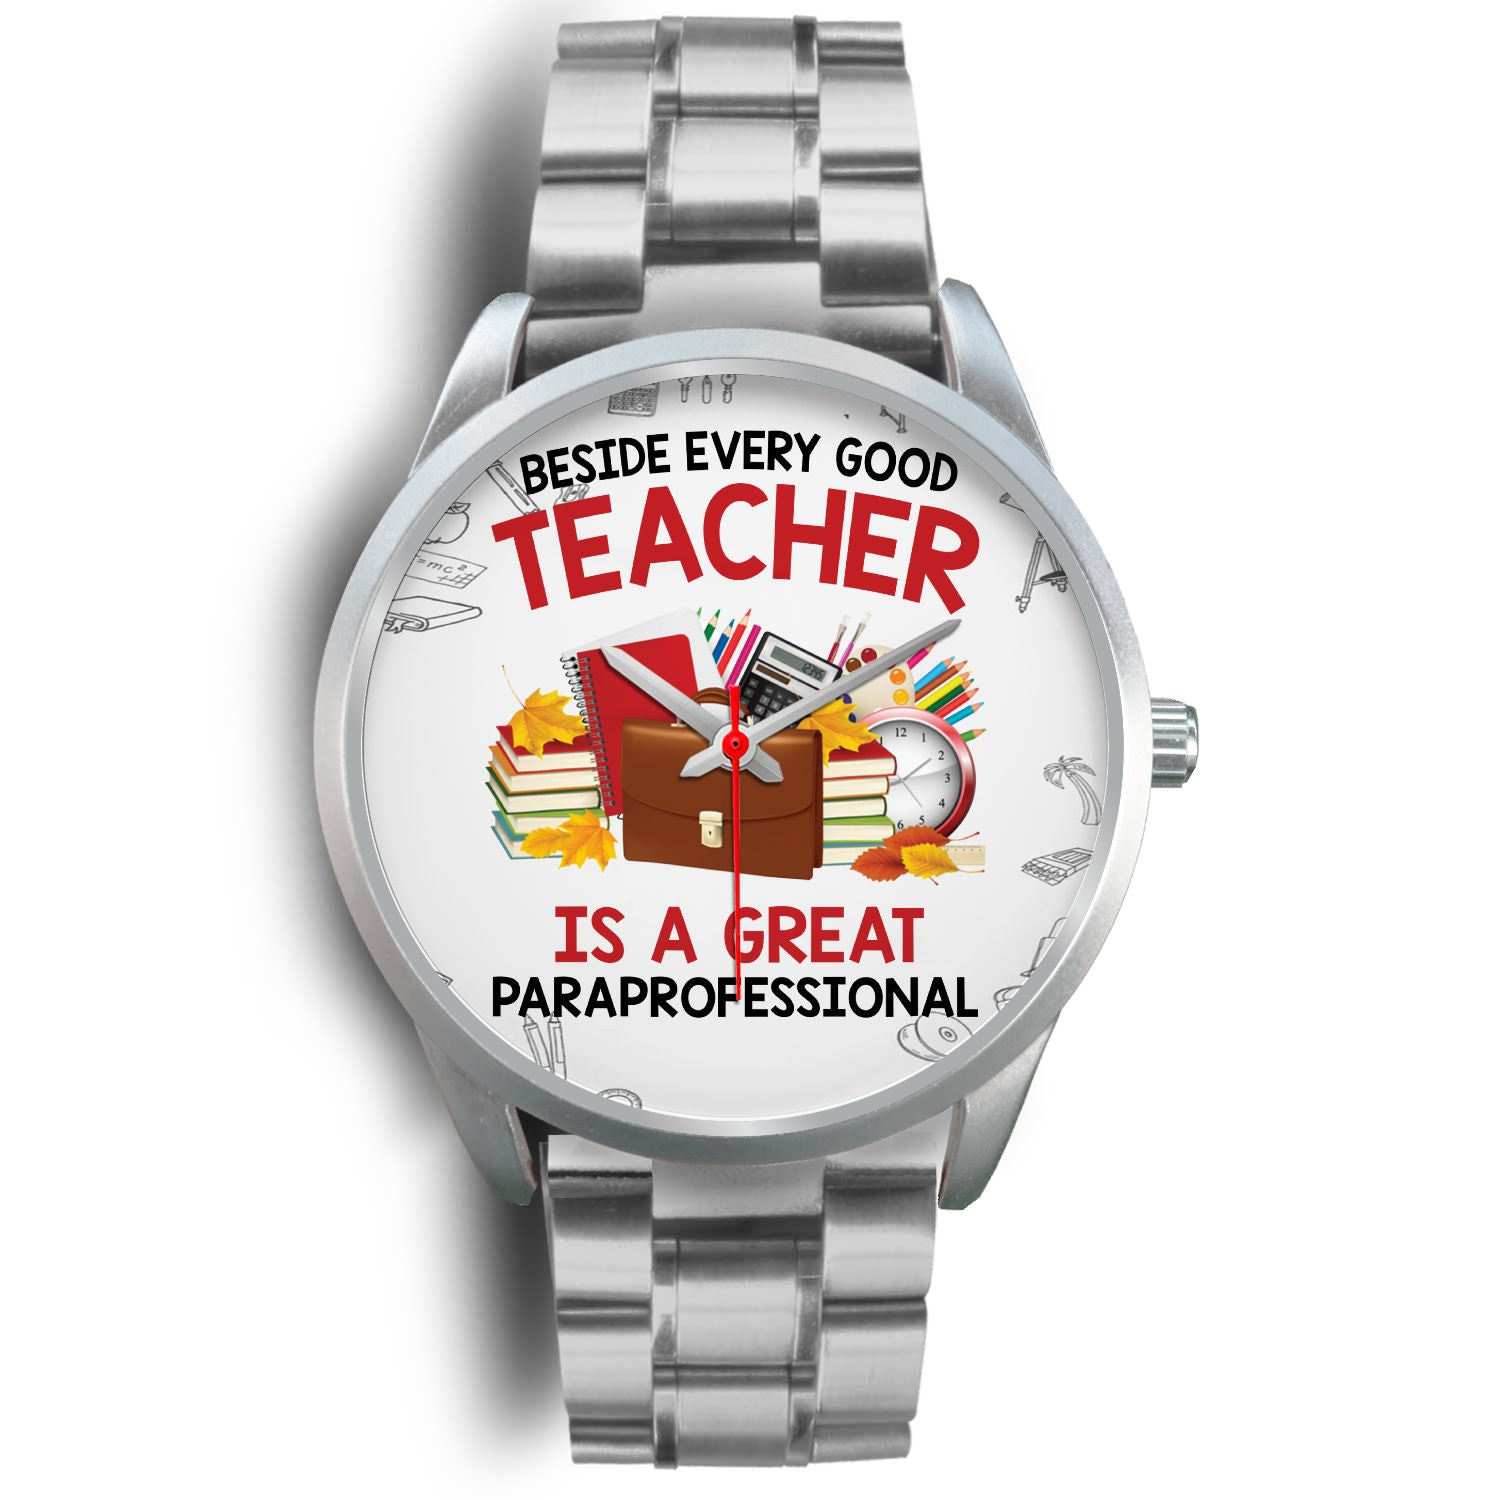 VIRA silver stainless steel watch for awesome teachers & papaprofessionals